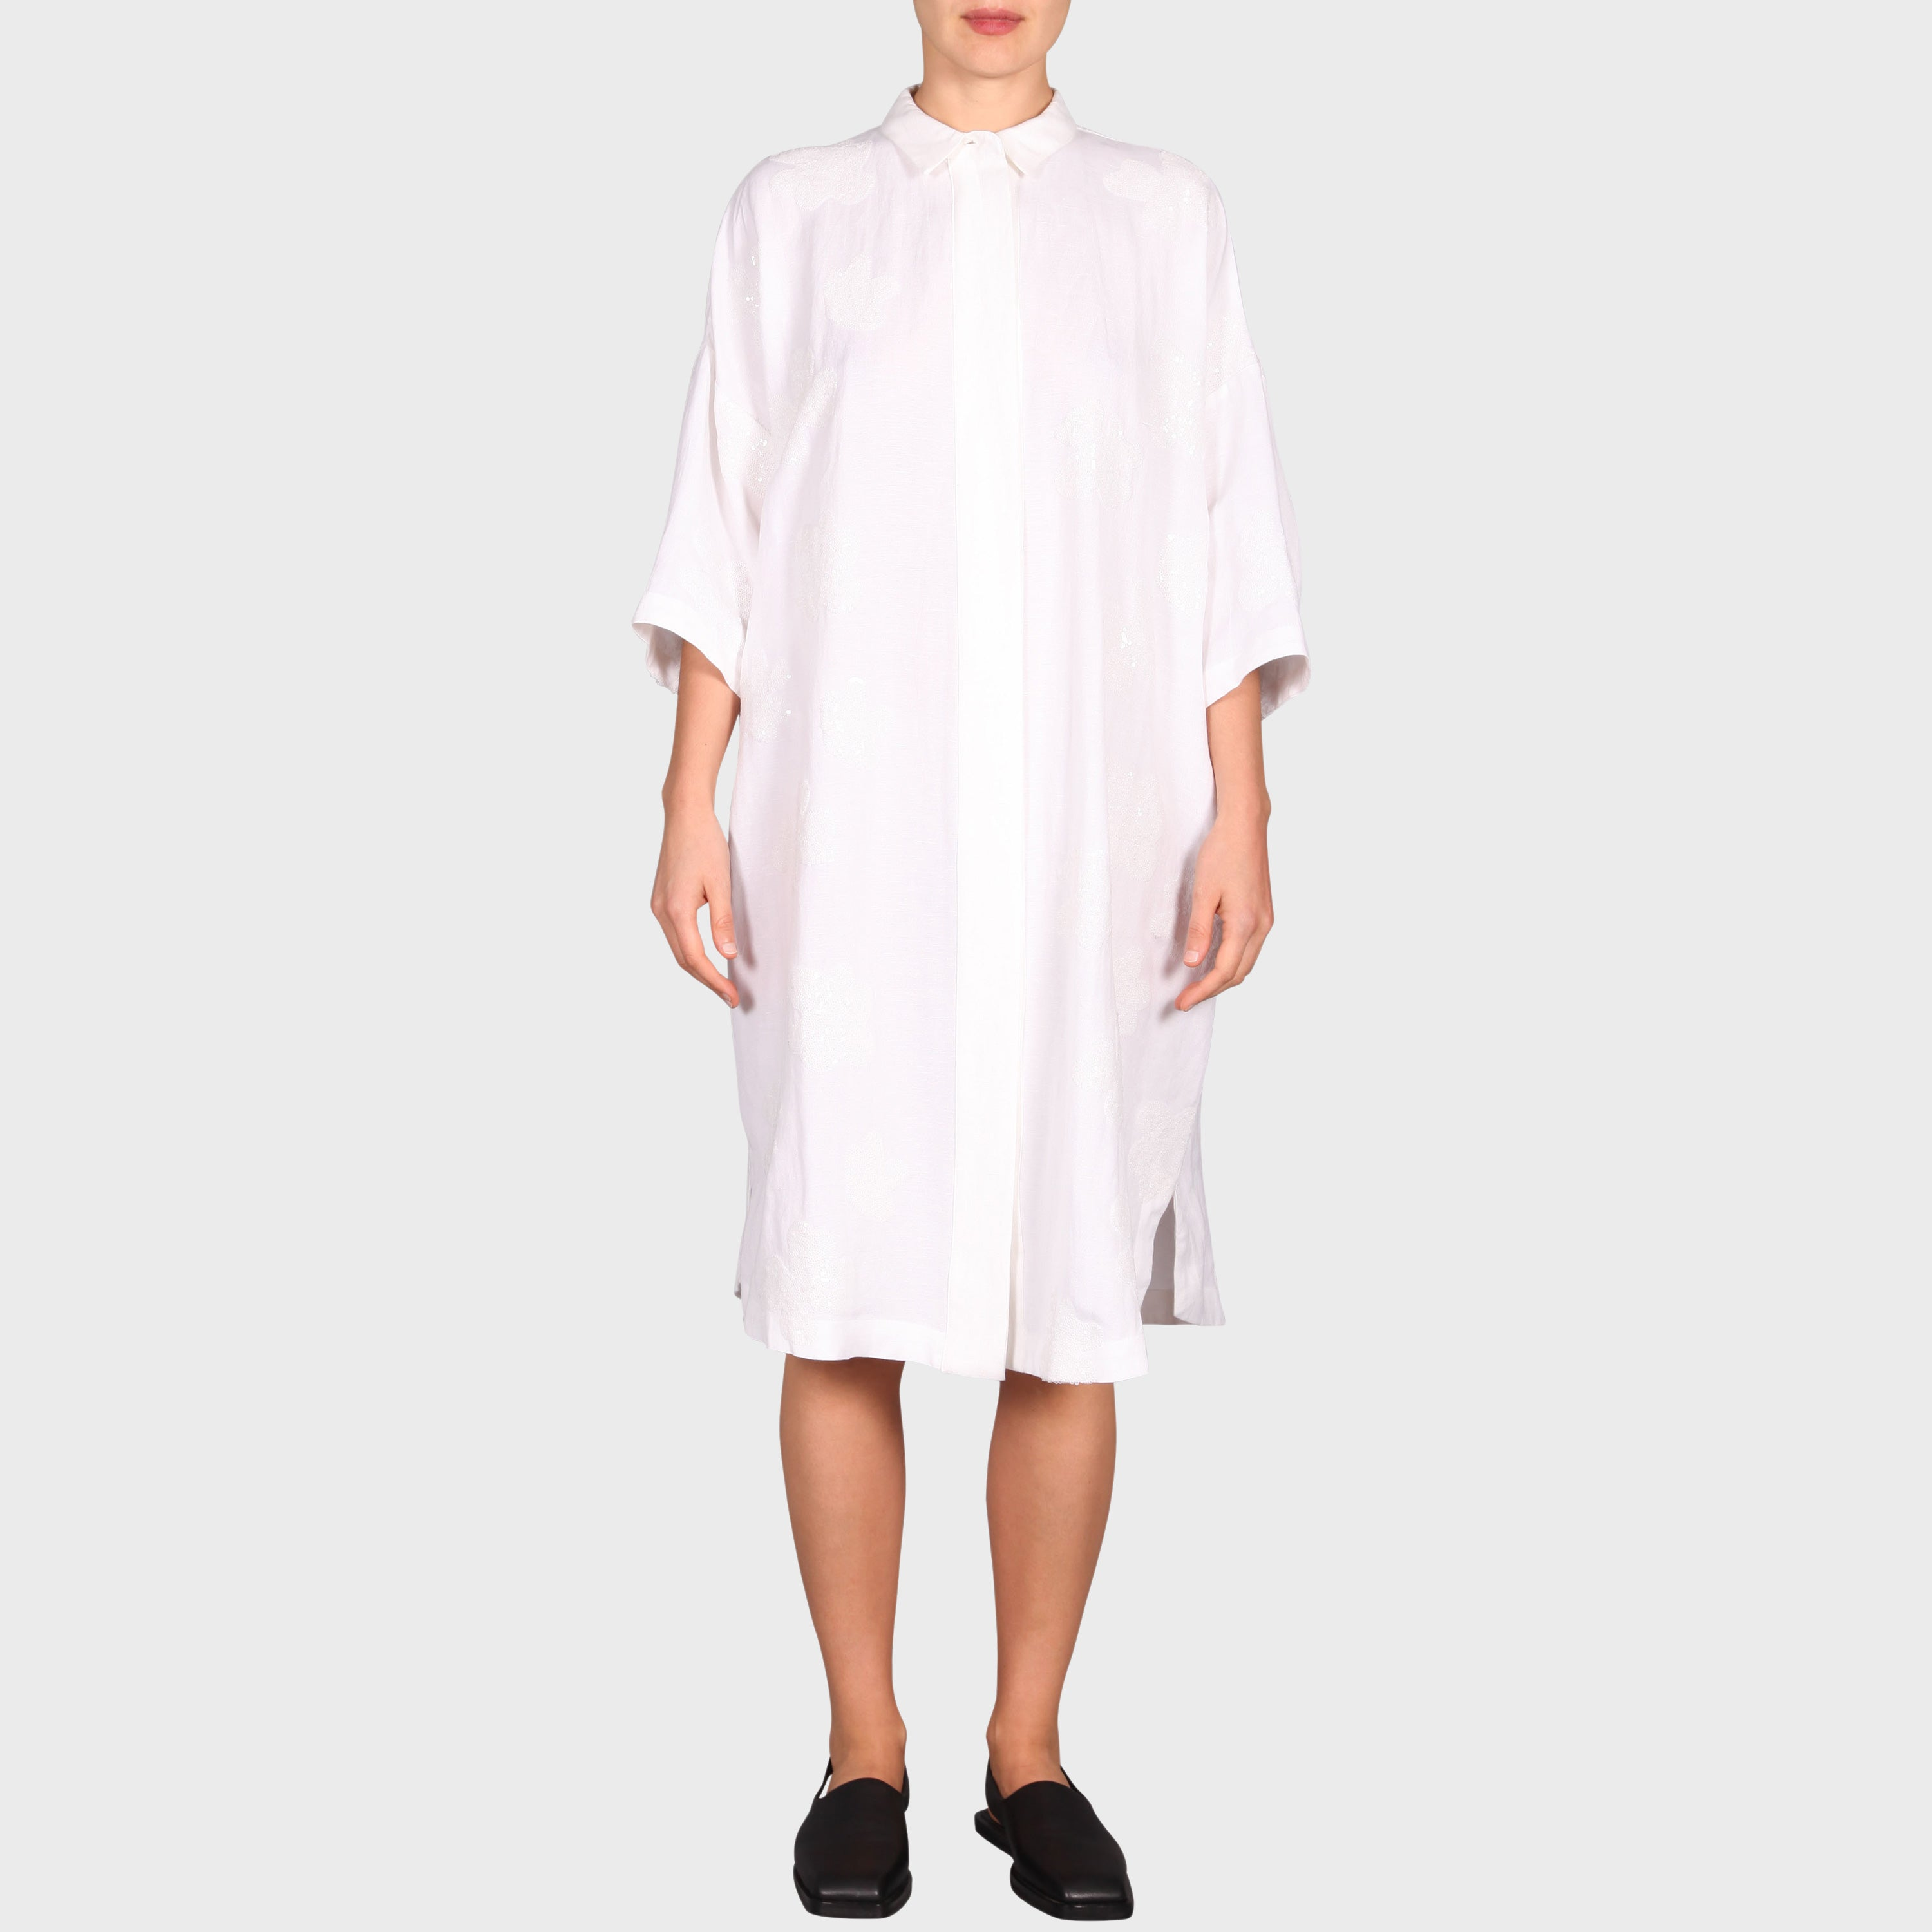 BENH DRESS / WHITE